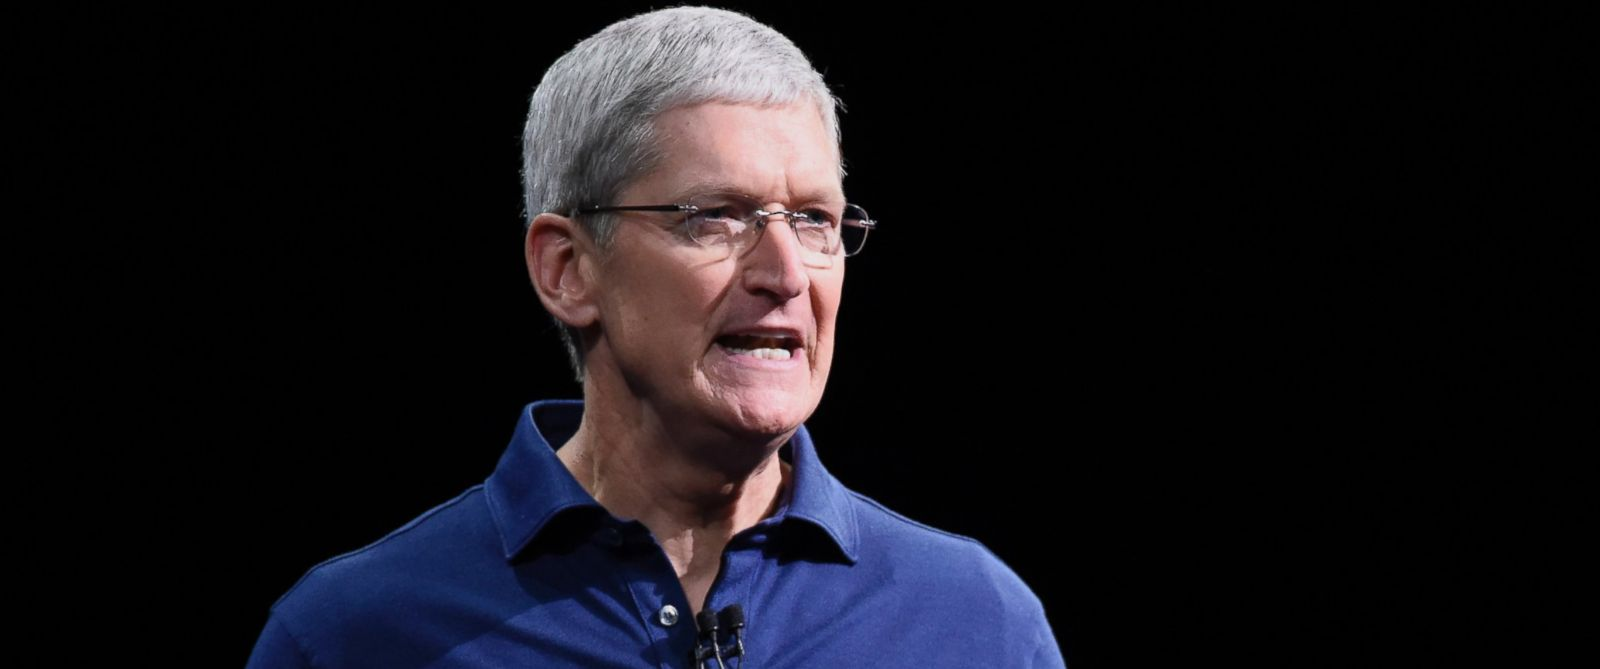 PHOTO: Tim Cook, chief executive officer of Apple Inc., speaks during the Apple World Wide Developers Conference in San Francisco on June 8, 2015.